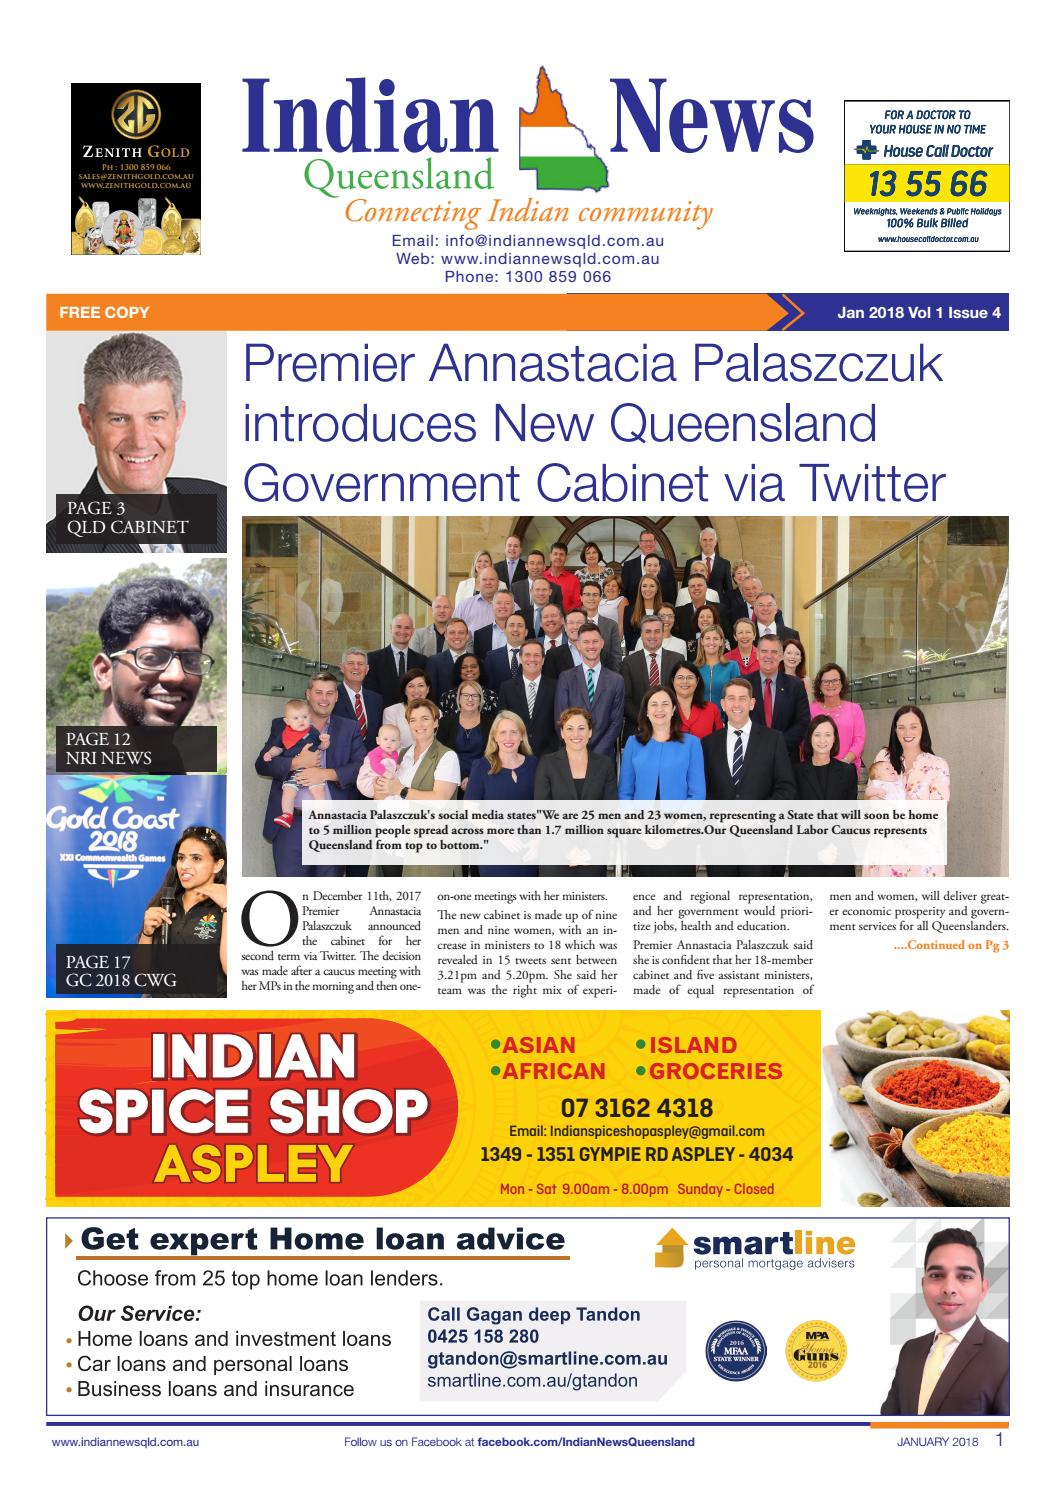 Indian News Queensland – Jan 2018 Vol 1 Issue 4 by Indian News Queensland -  issuu